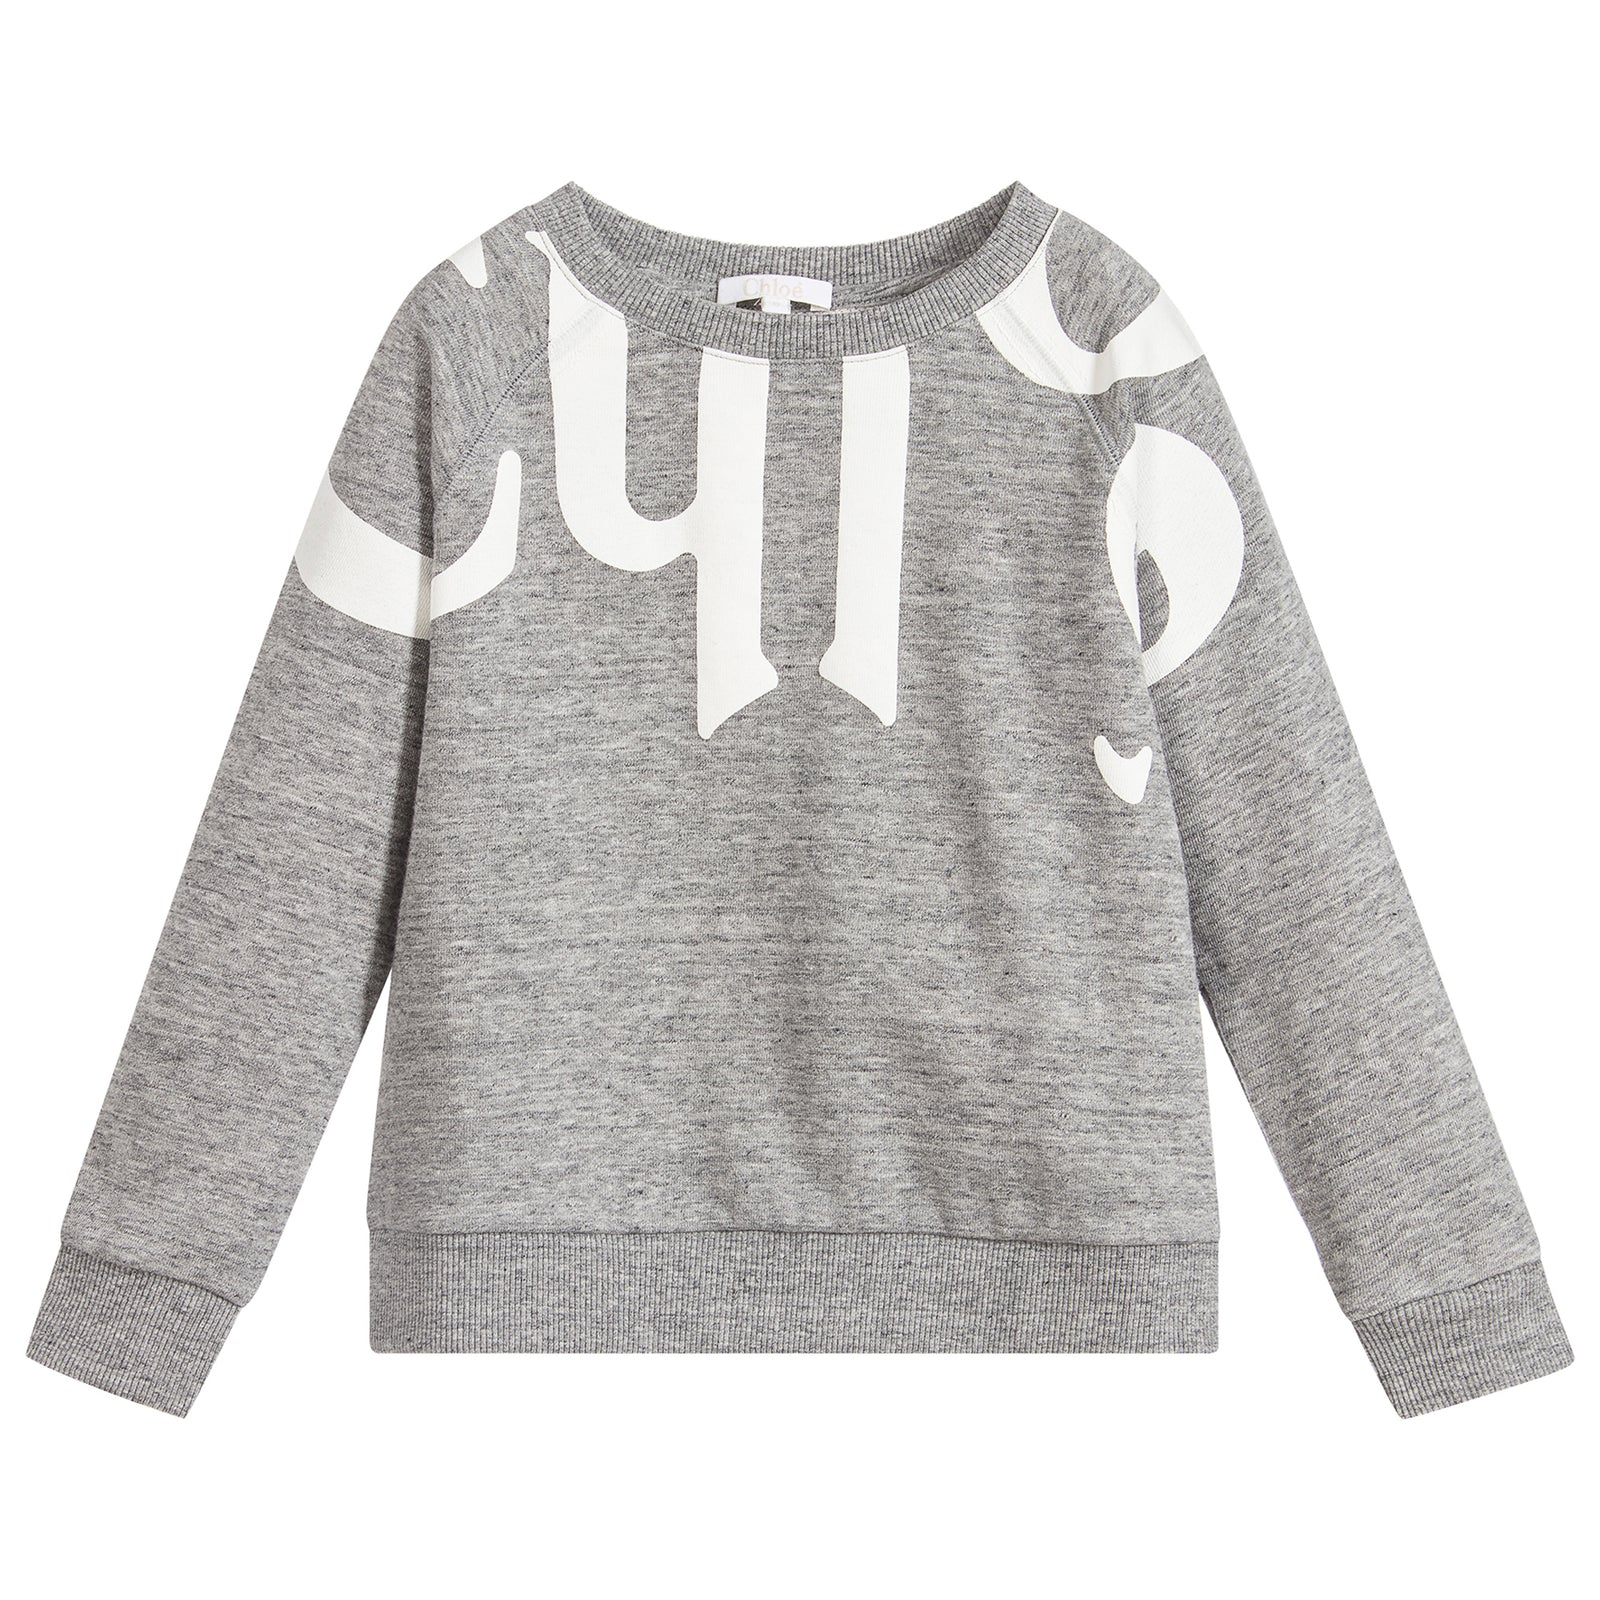 11b1b9ccd Chloe Girls Grey Logo Sweatshirt (Mini-Me) – Petit New York